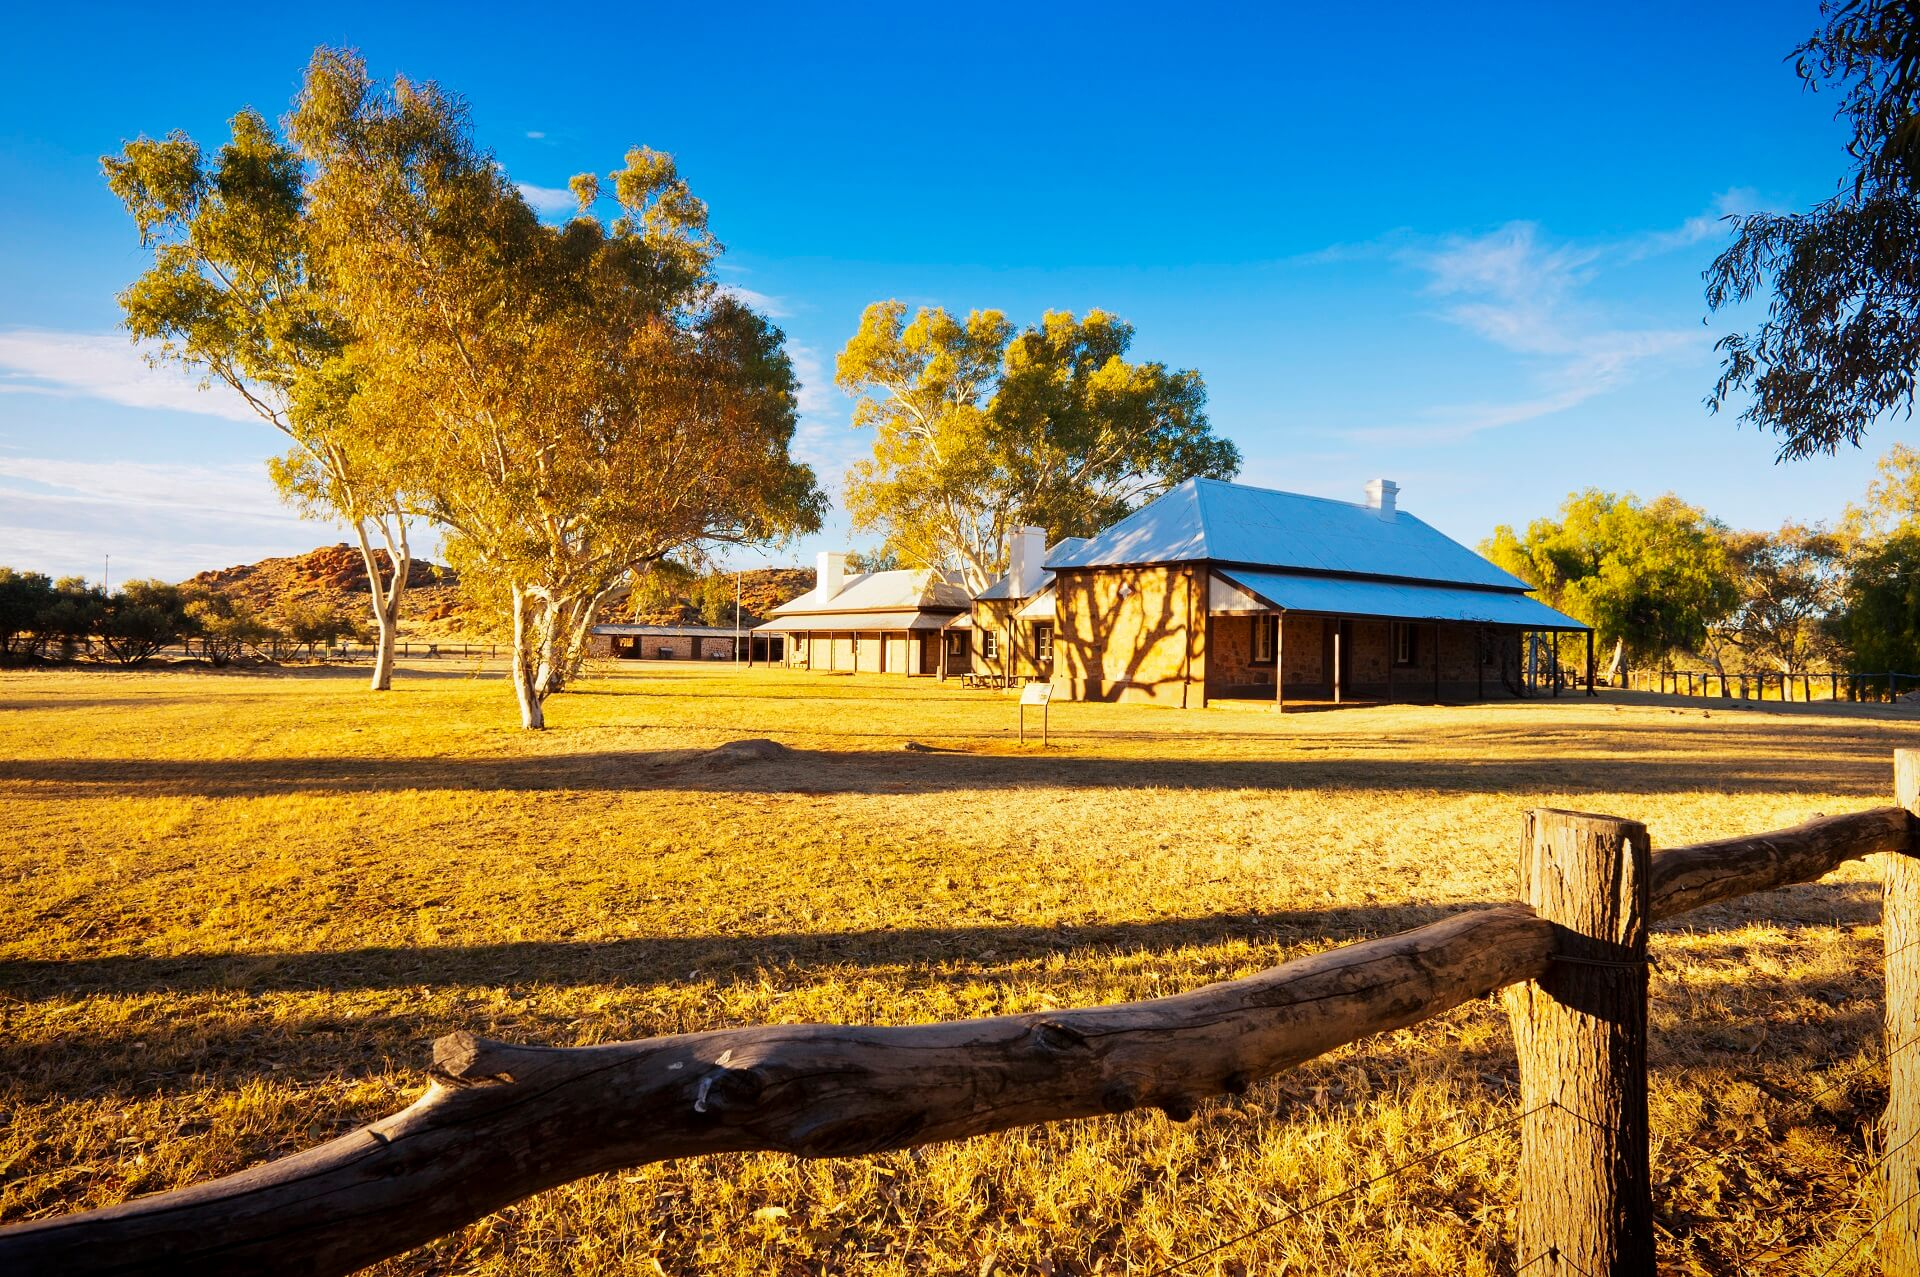 Die Telegraph Station in Alice Springs im Outback von Australien.